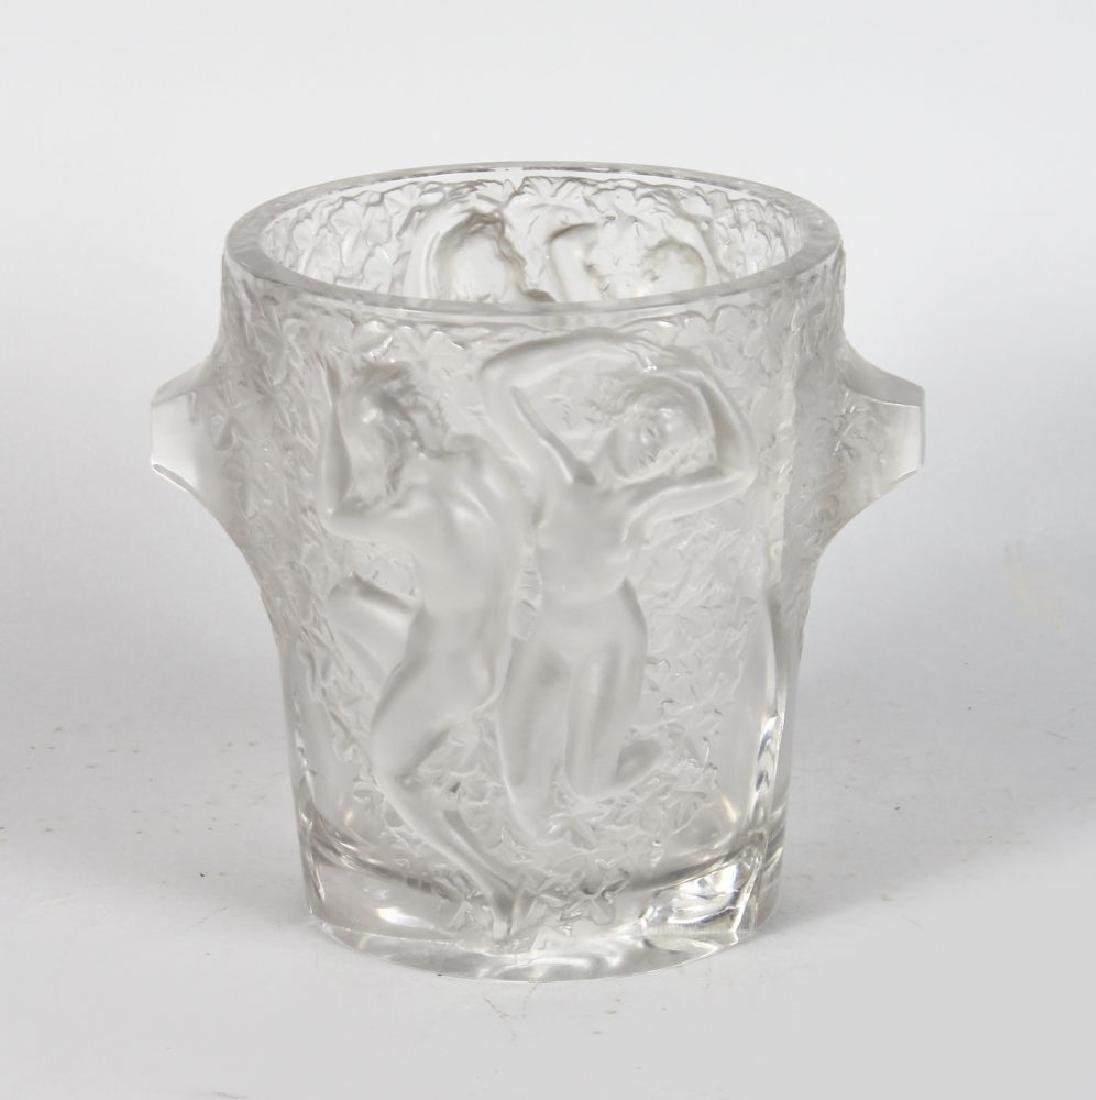 A LALIQUE ICE BUCKET, with two pairs of female nudes